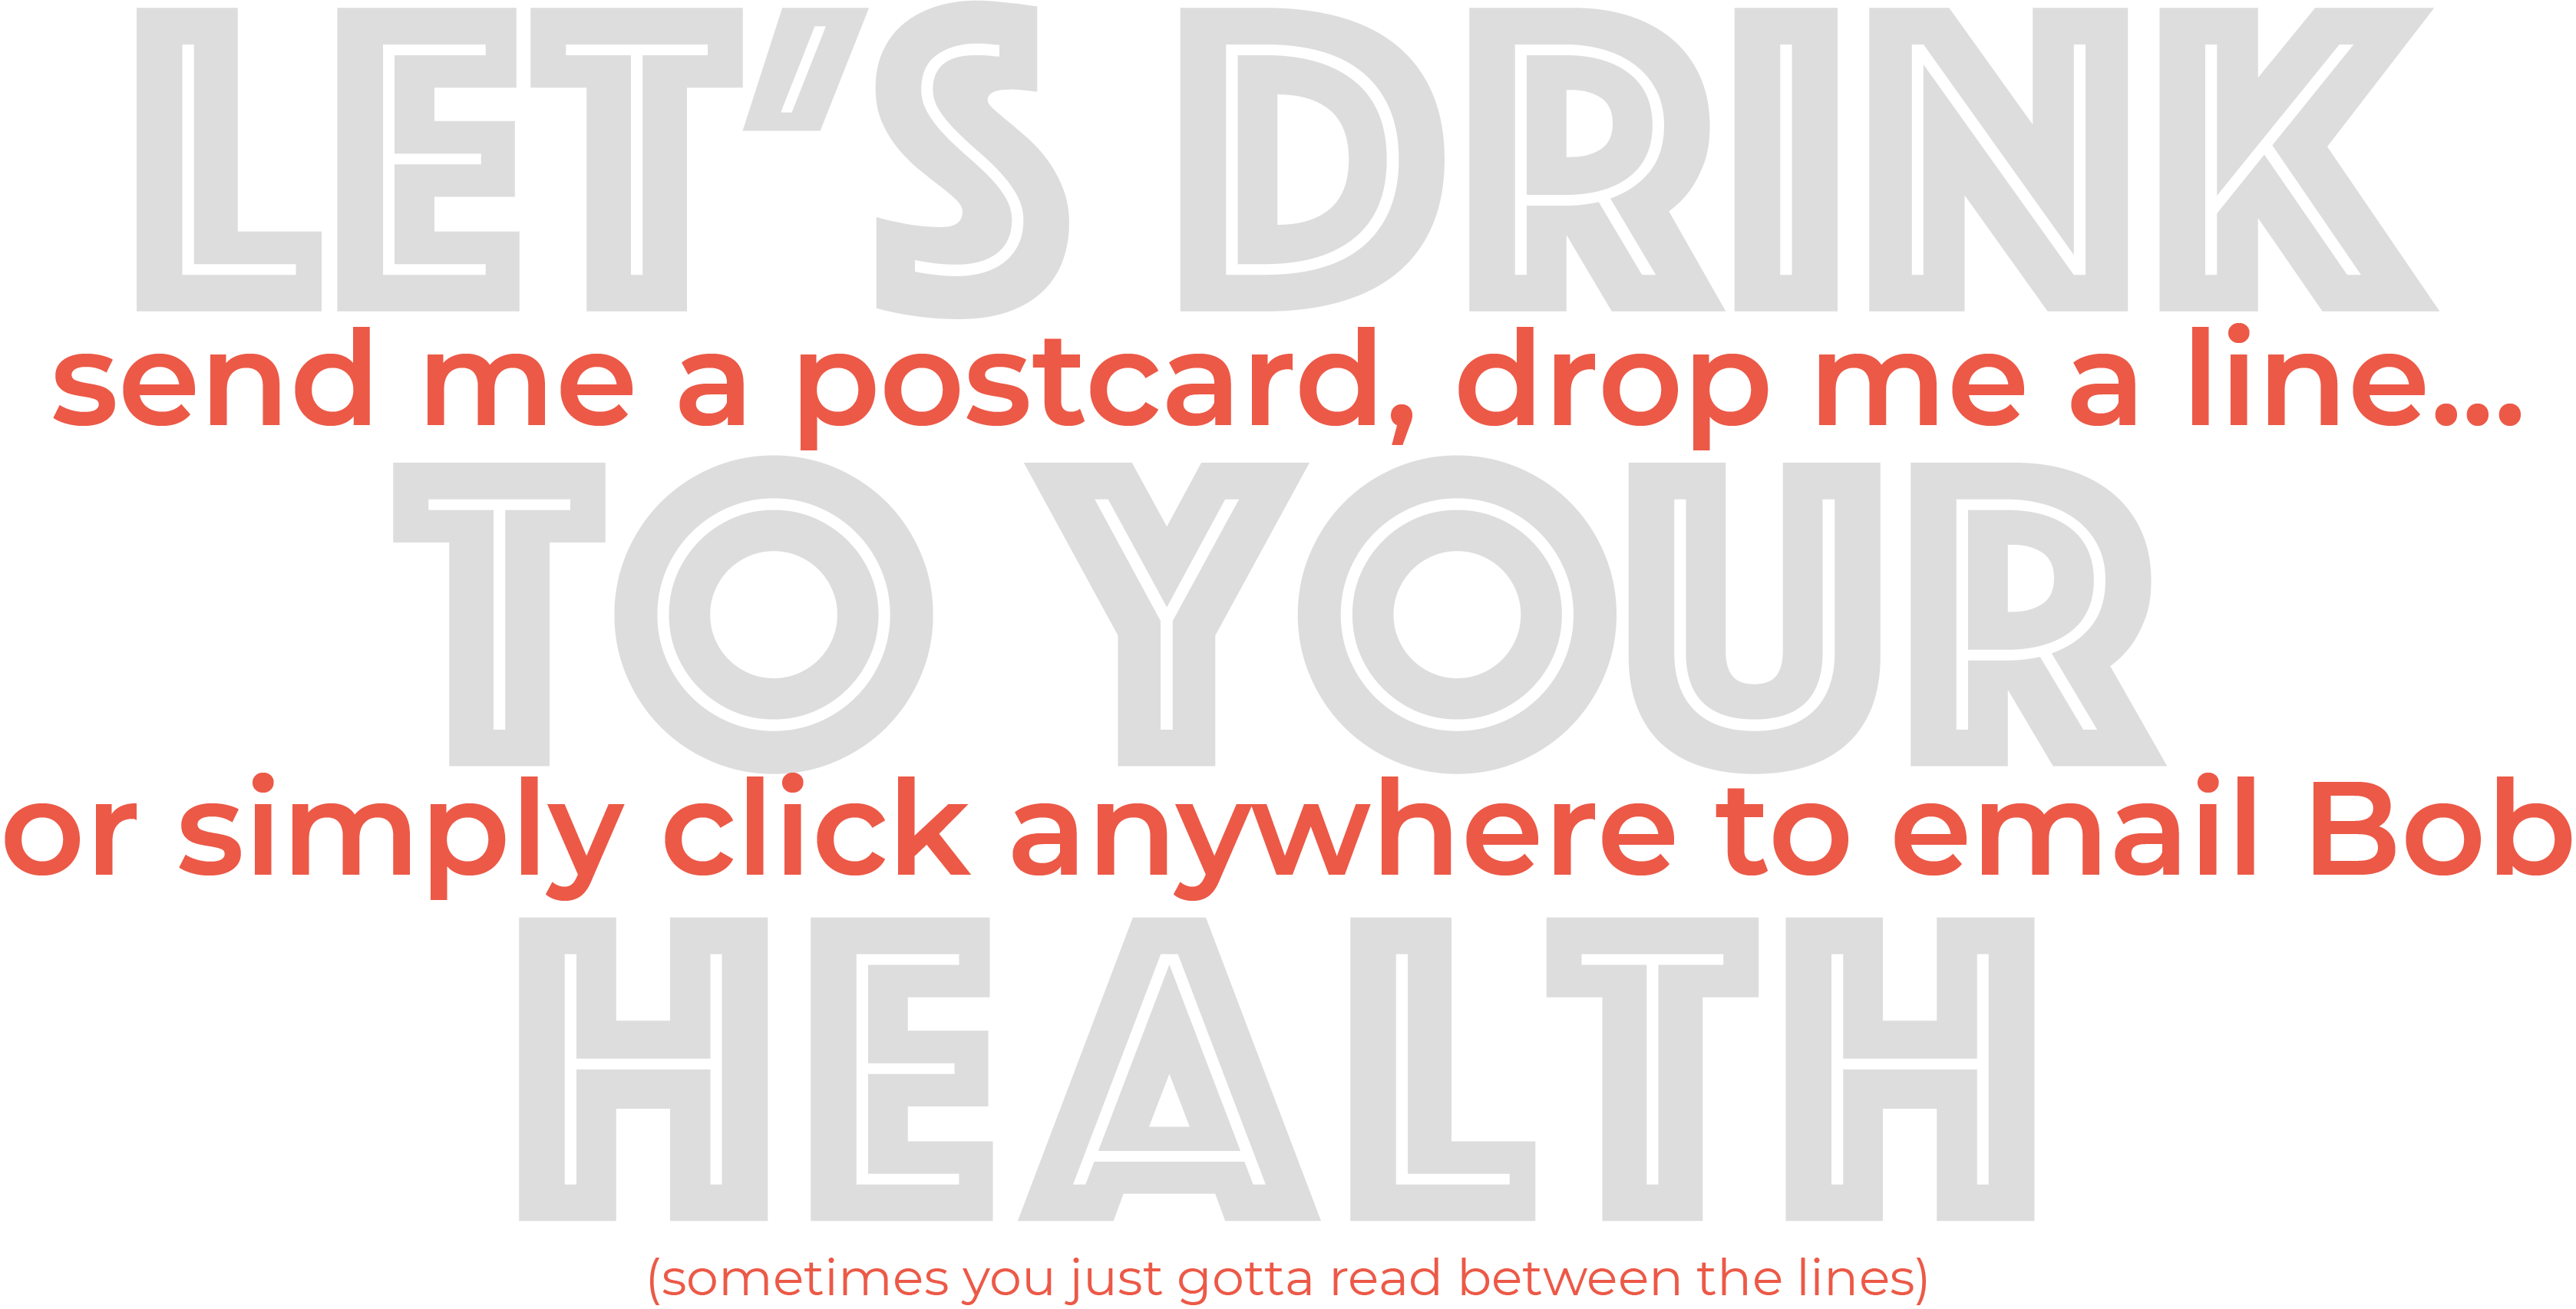 Let's drink to your health. Send me a postcard, drop me a line, or simply click anywhere to email bob